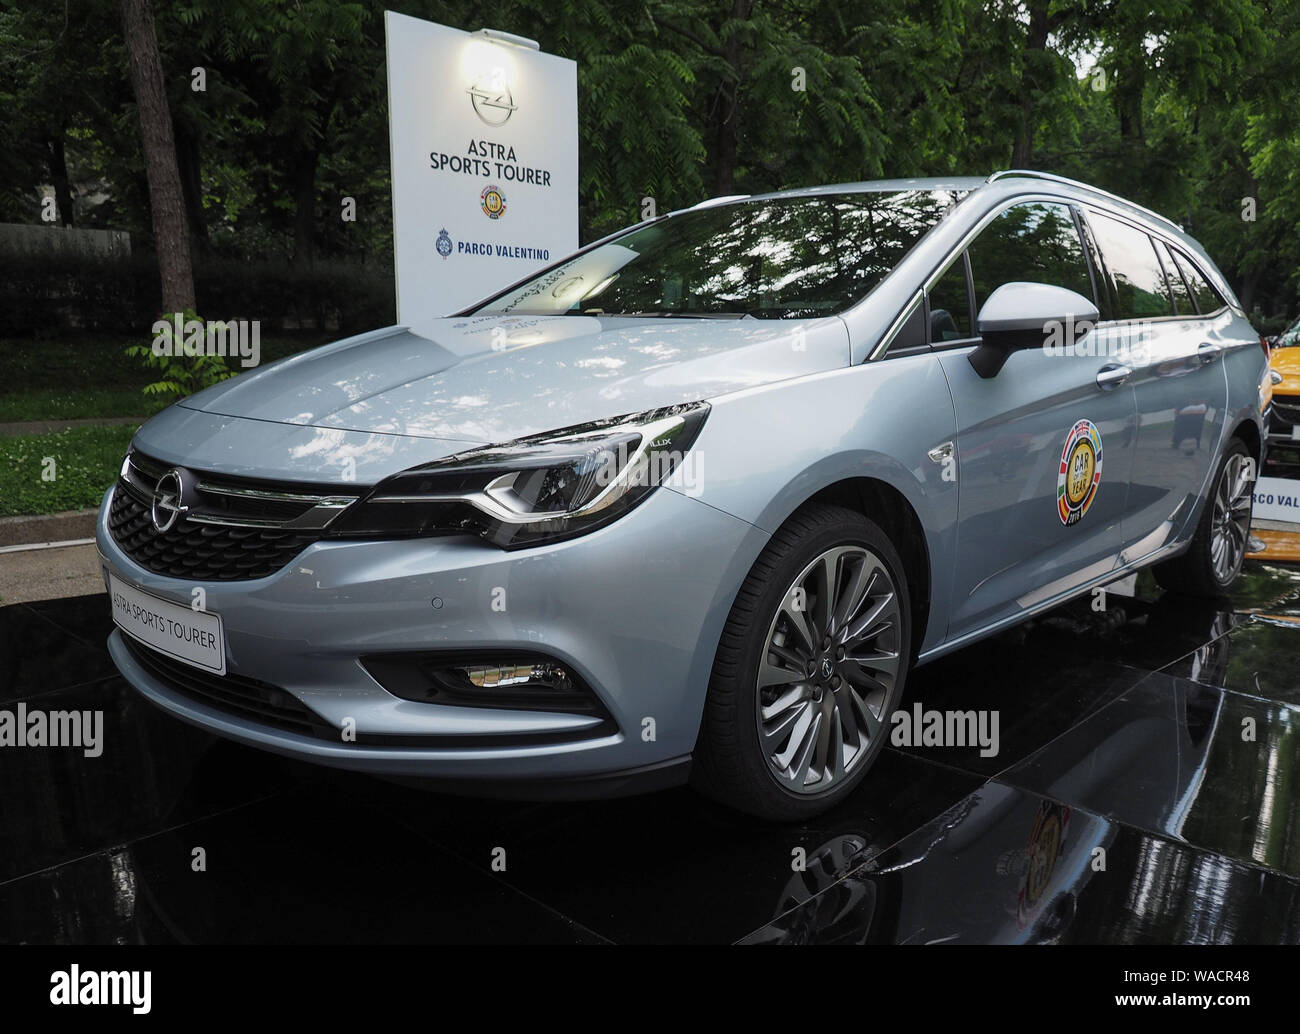 Opel Astra Stock Photos & Opel Astra Stock Images - Alamy